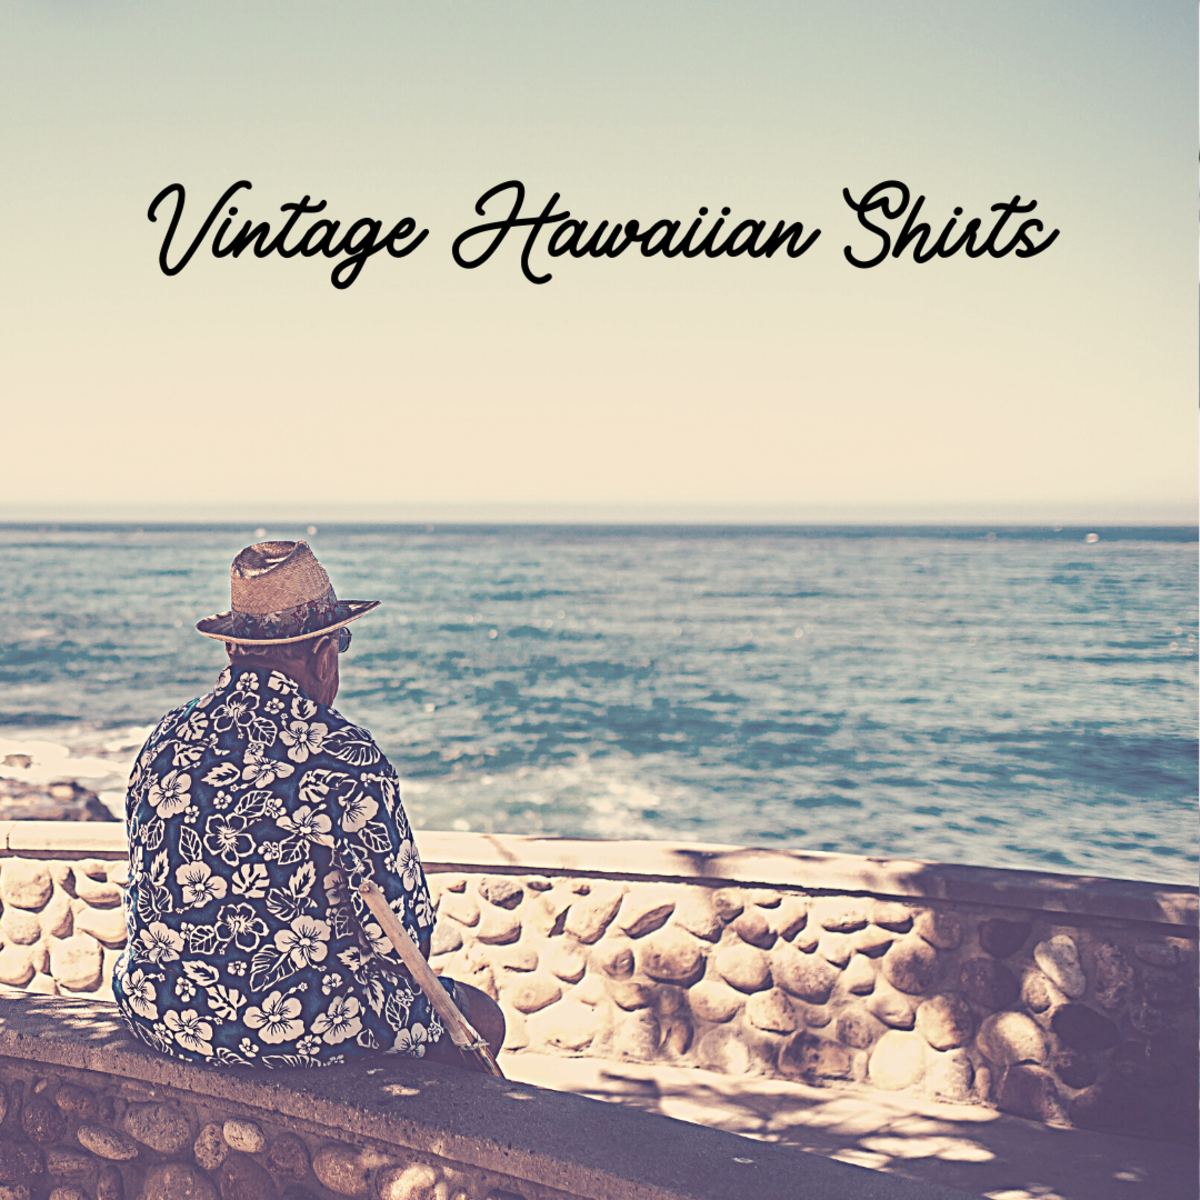 A brief guide to identifying vintage Hawaiian shirts